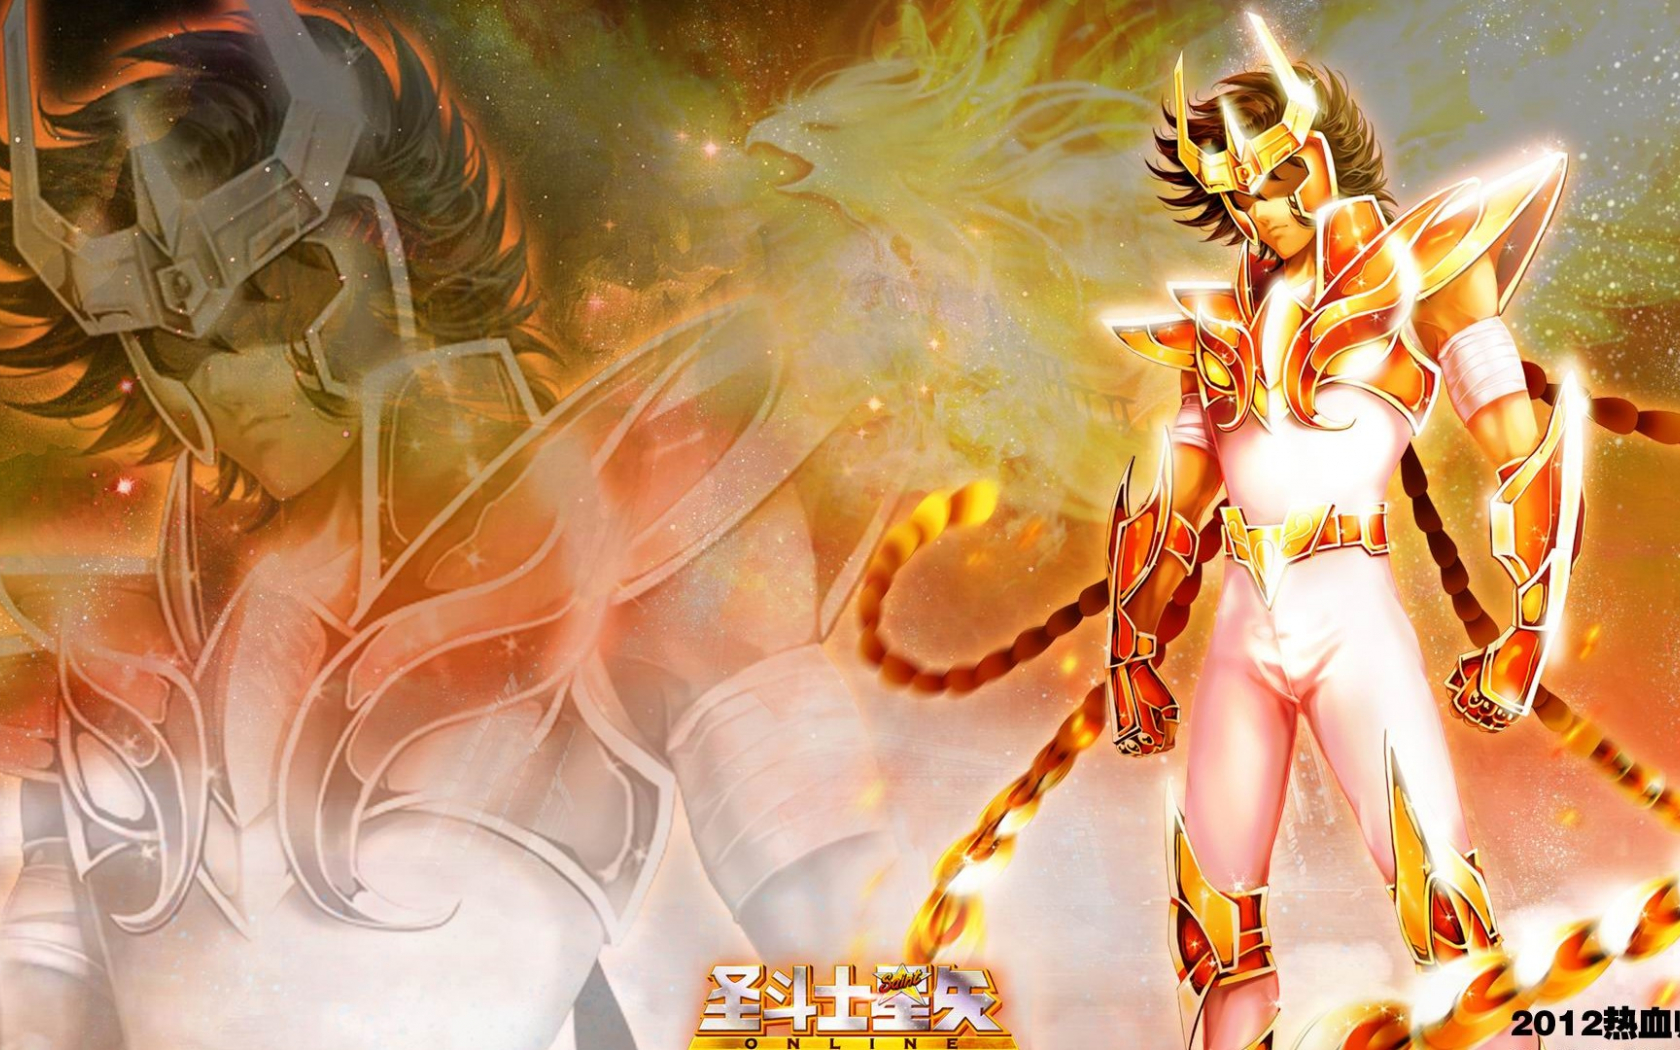 Free Download Saint Seiya Omega Anime Hd Wallpaper 19 Full Hd